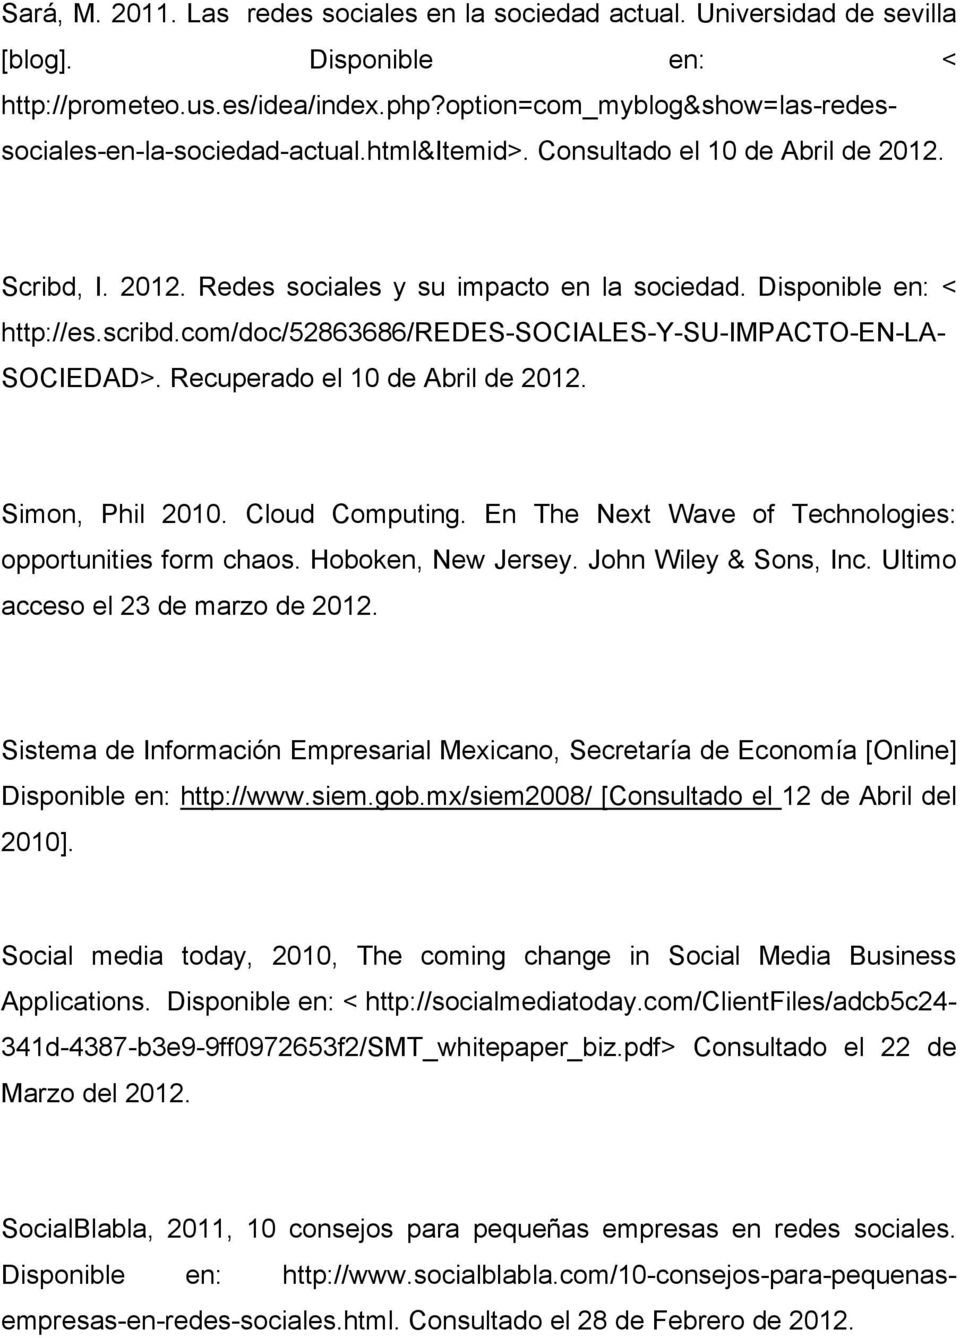 scribd.com/doc/52863686/redes-sociales-y-su-impacto-en-la- SOCIEDAD>. Recuperado el 10 de Abril de 2012. Simon, Phil 2010. Cloud Computing. En The Next Wave of Technologies: opportunities form chaos.